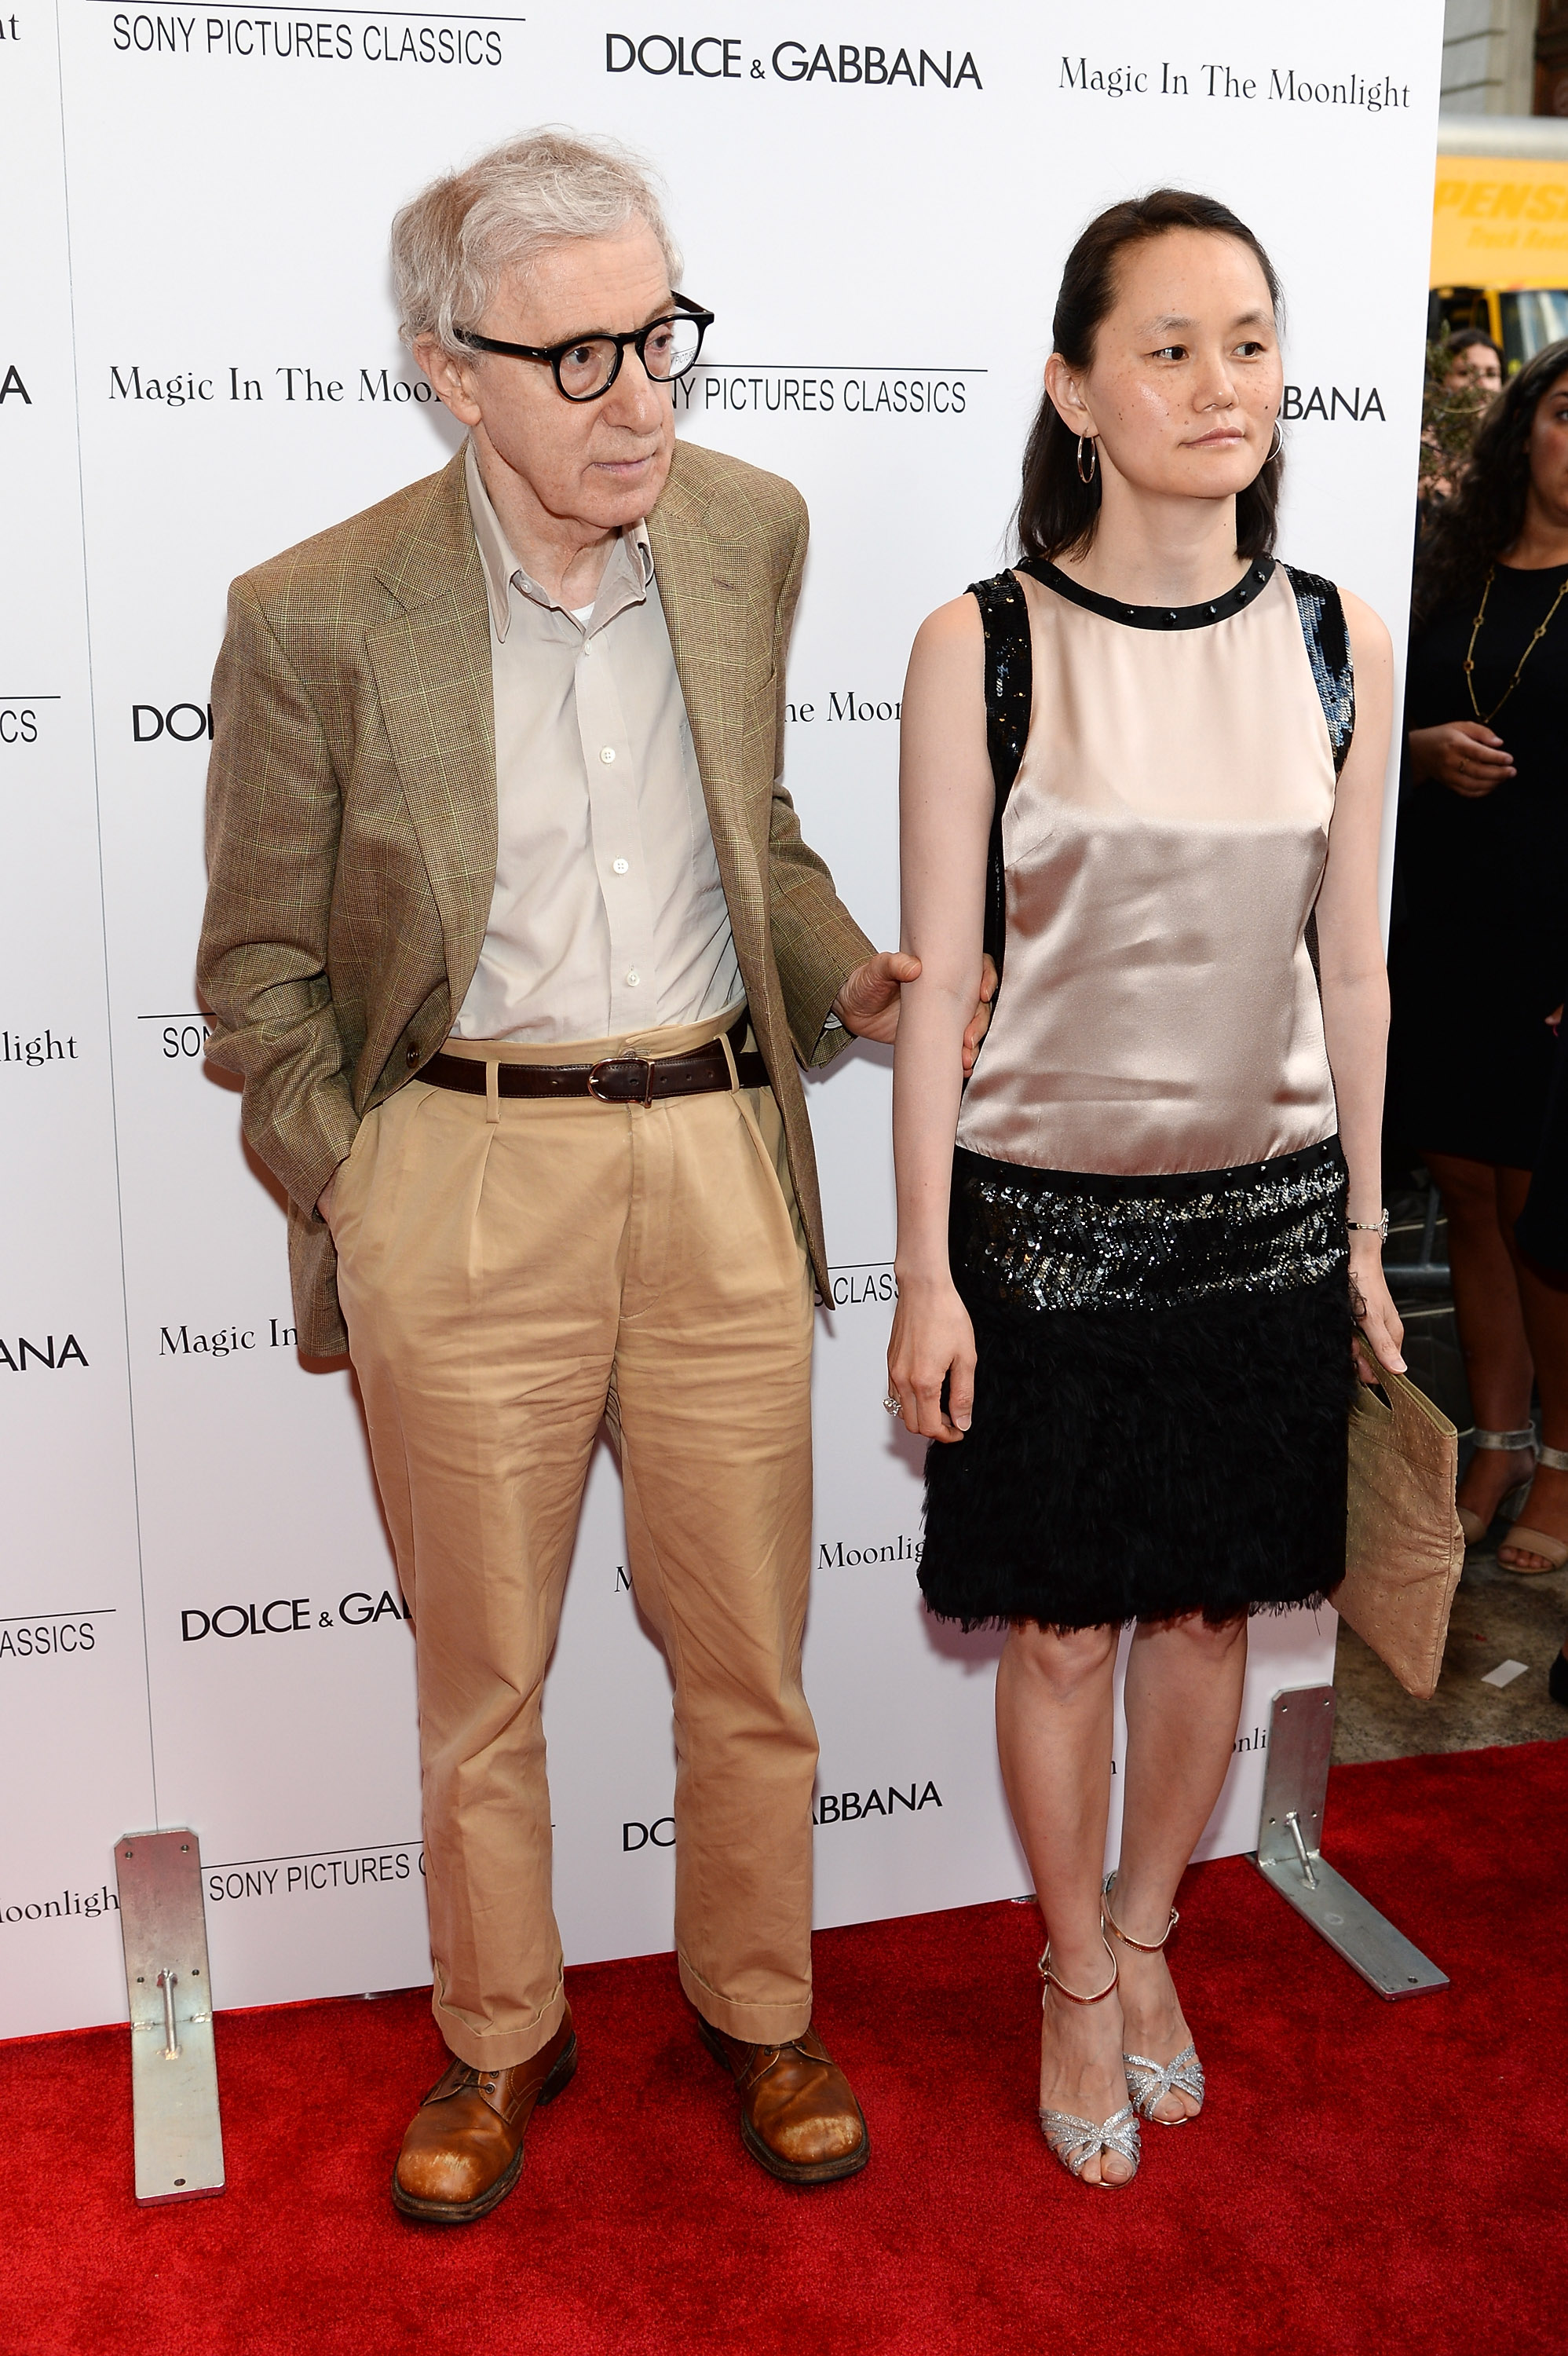 Woody Allen's Magic in the Moonlight premiere fashion hits and misses [GALLERY]